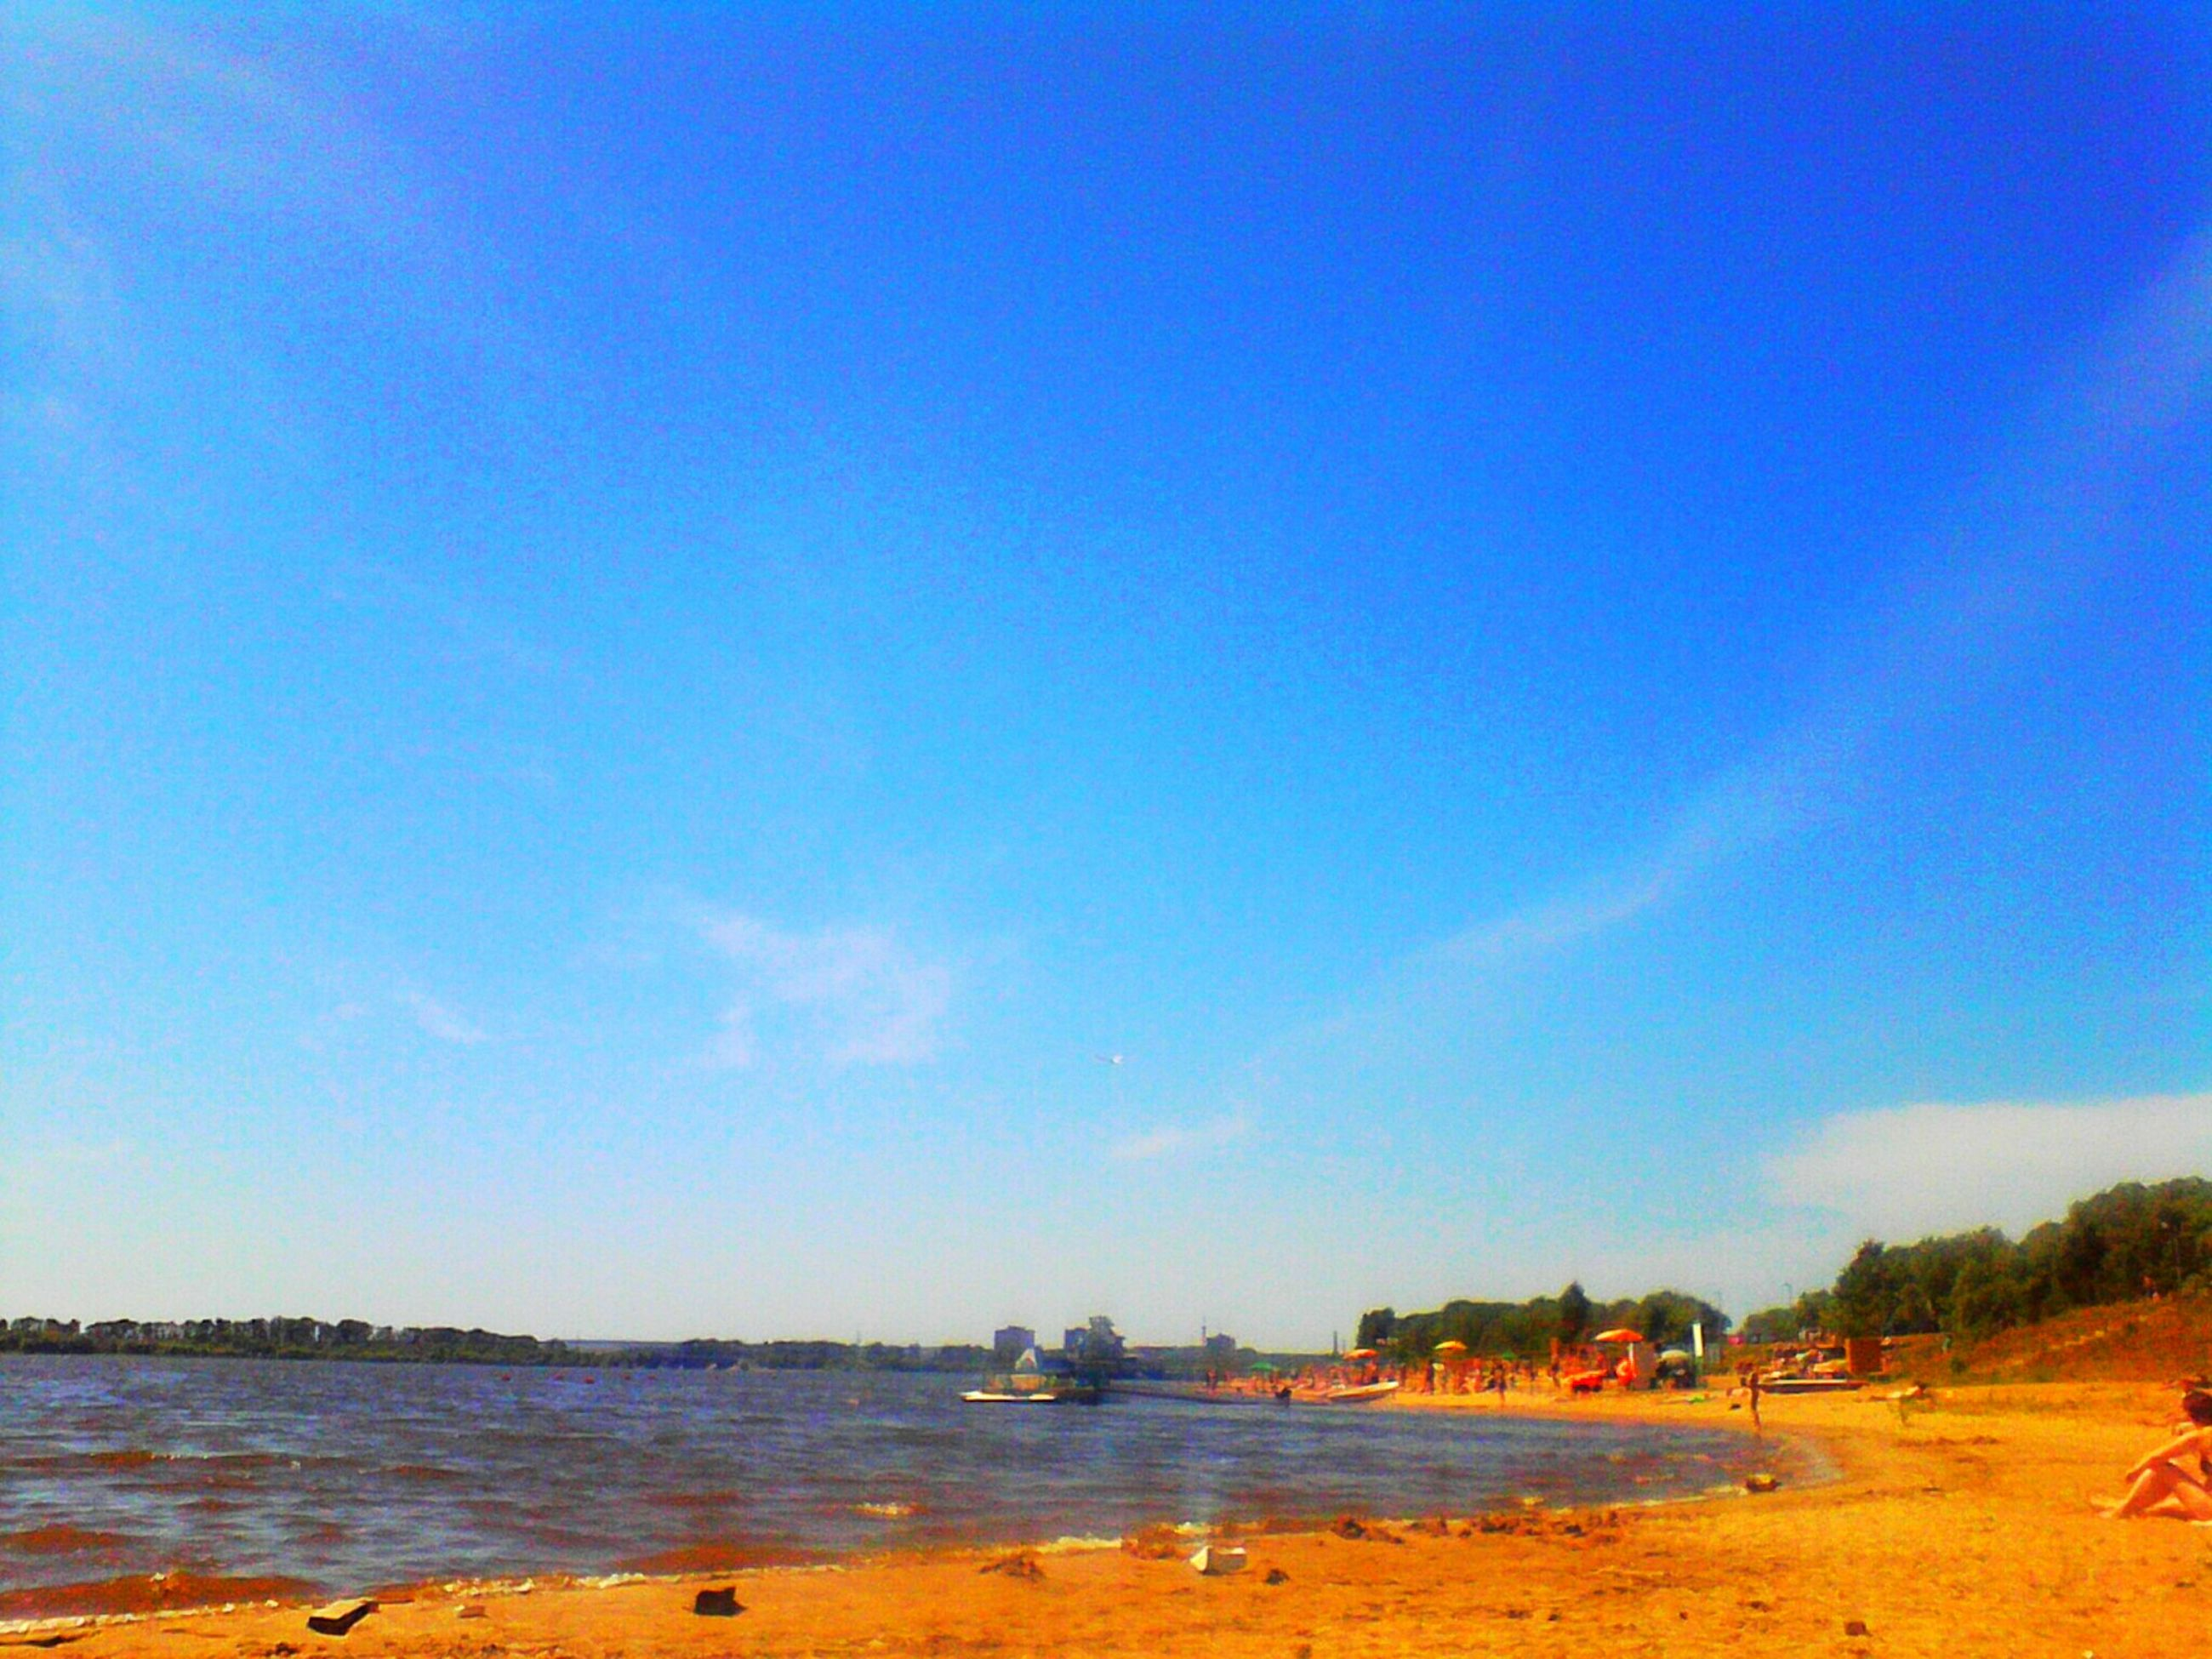 beach, water, blue, sand, sea, tranquil scene, tranquility, shore, scenics, beauty in nature, sky, nature, copy space, idyllic, incidental people, clear sky, horizon over water, coastline, non-urban scene, day